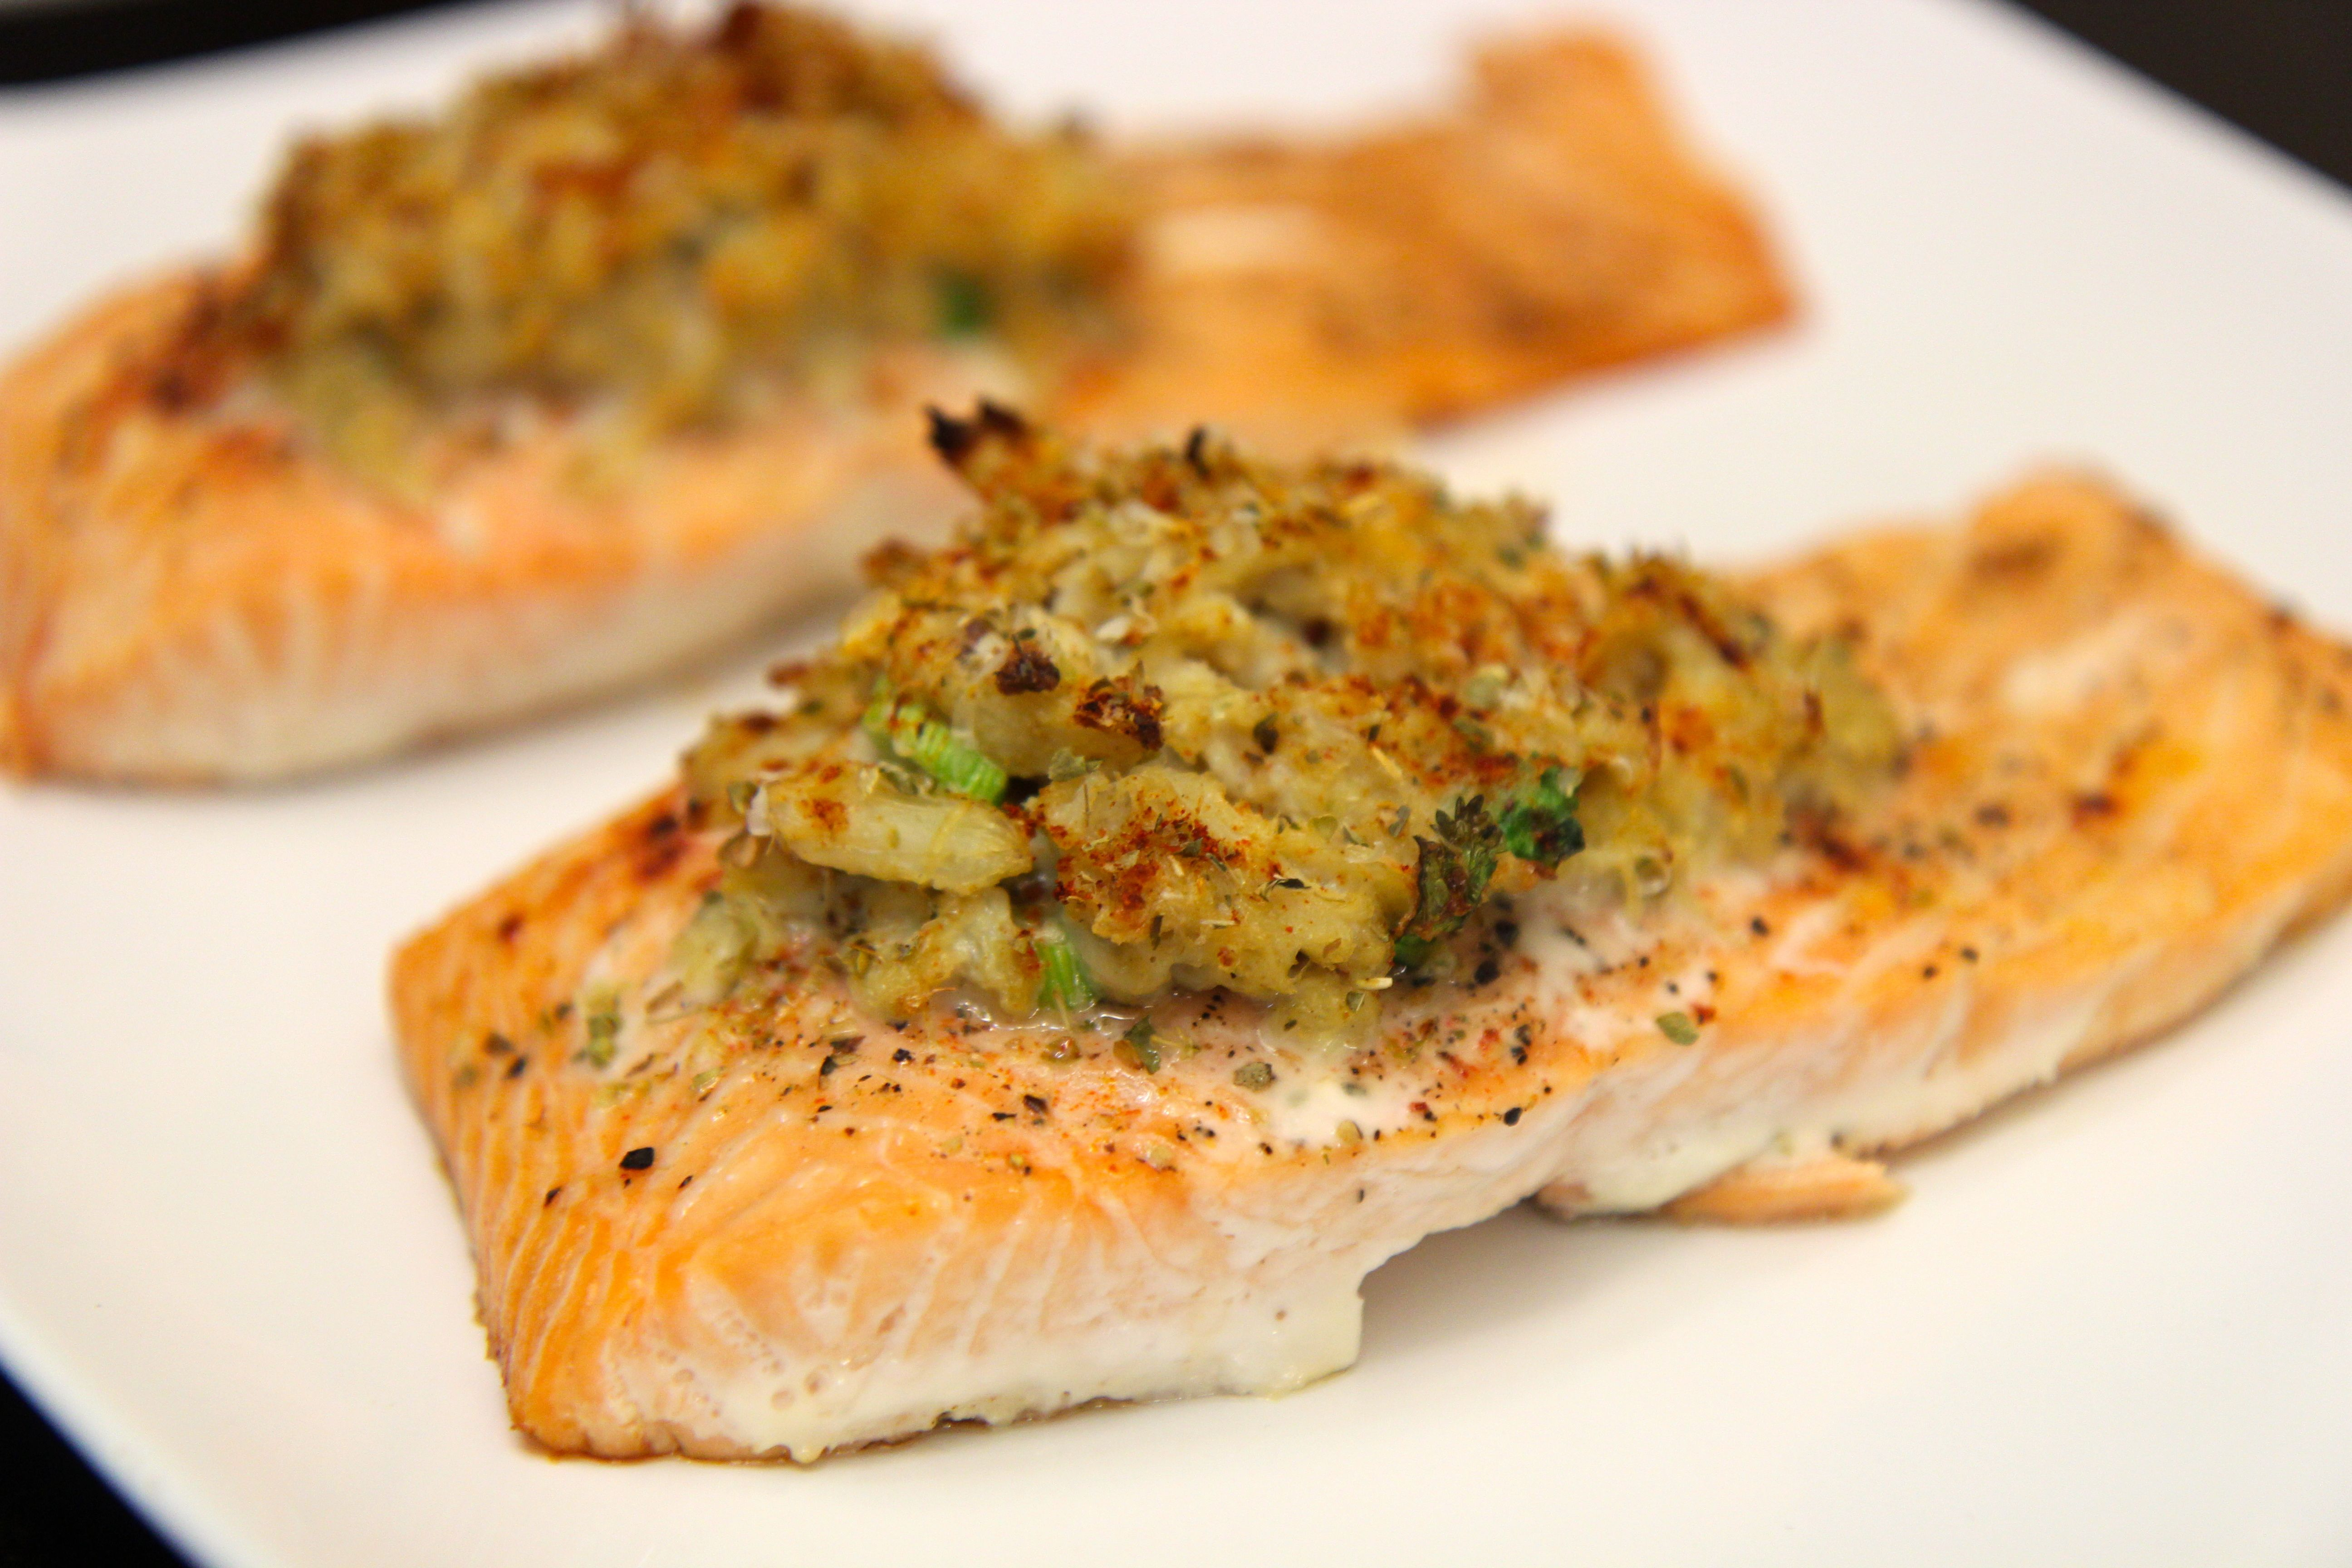 Many Crab Stuffed Salmon Recipes Require Very Little Seasoning But I Am So  In Love With My Crab Cakes Recipe That I Decided To Use That Recipe To  Season The